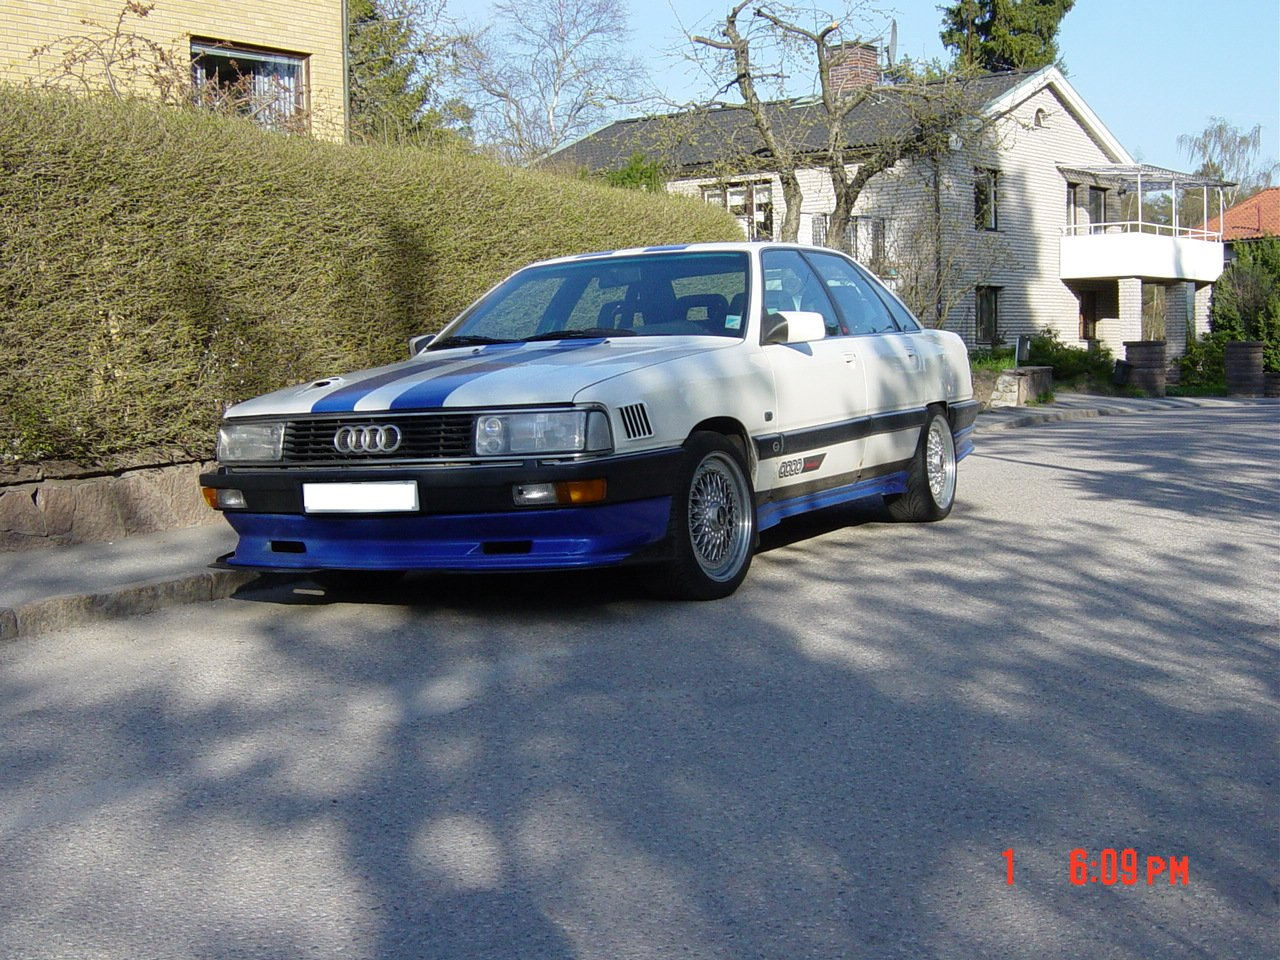 http://www.loaded4speed.com/audi100sve/2.jpg